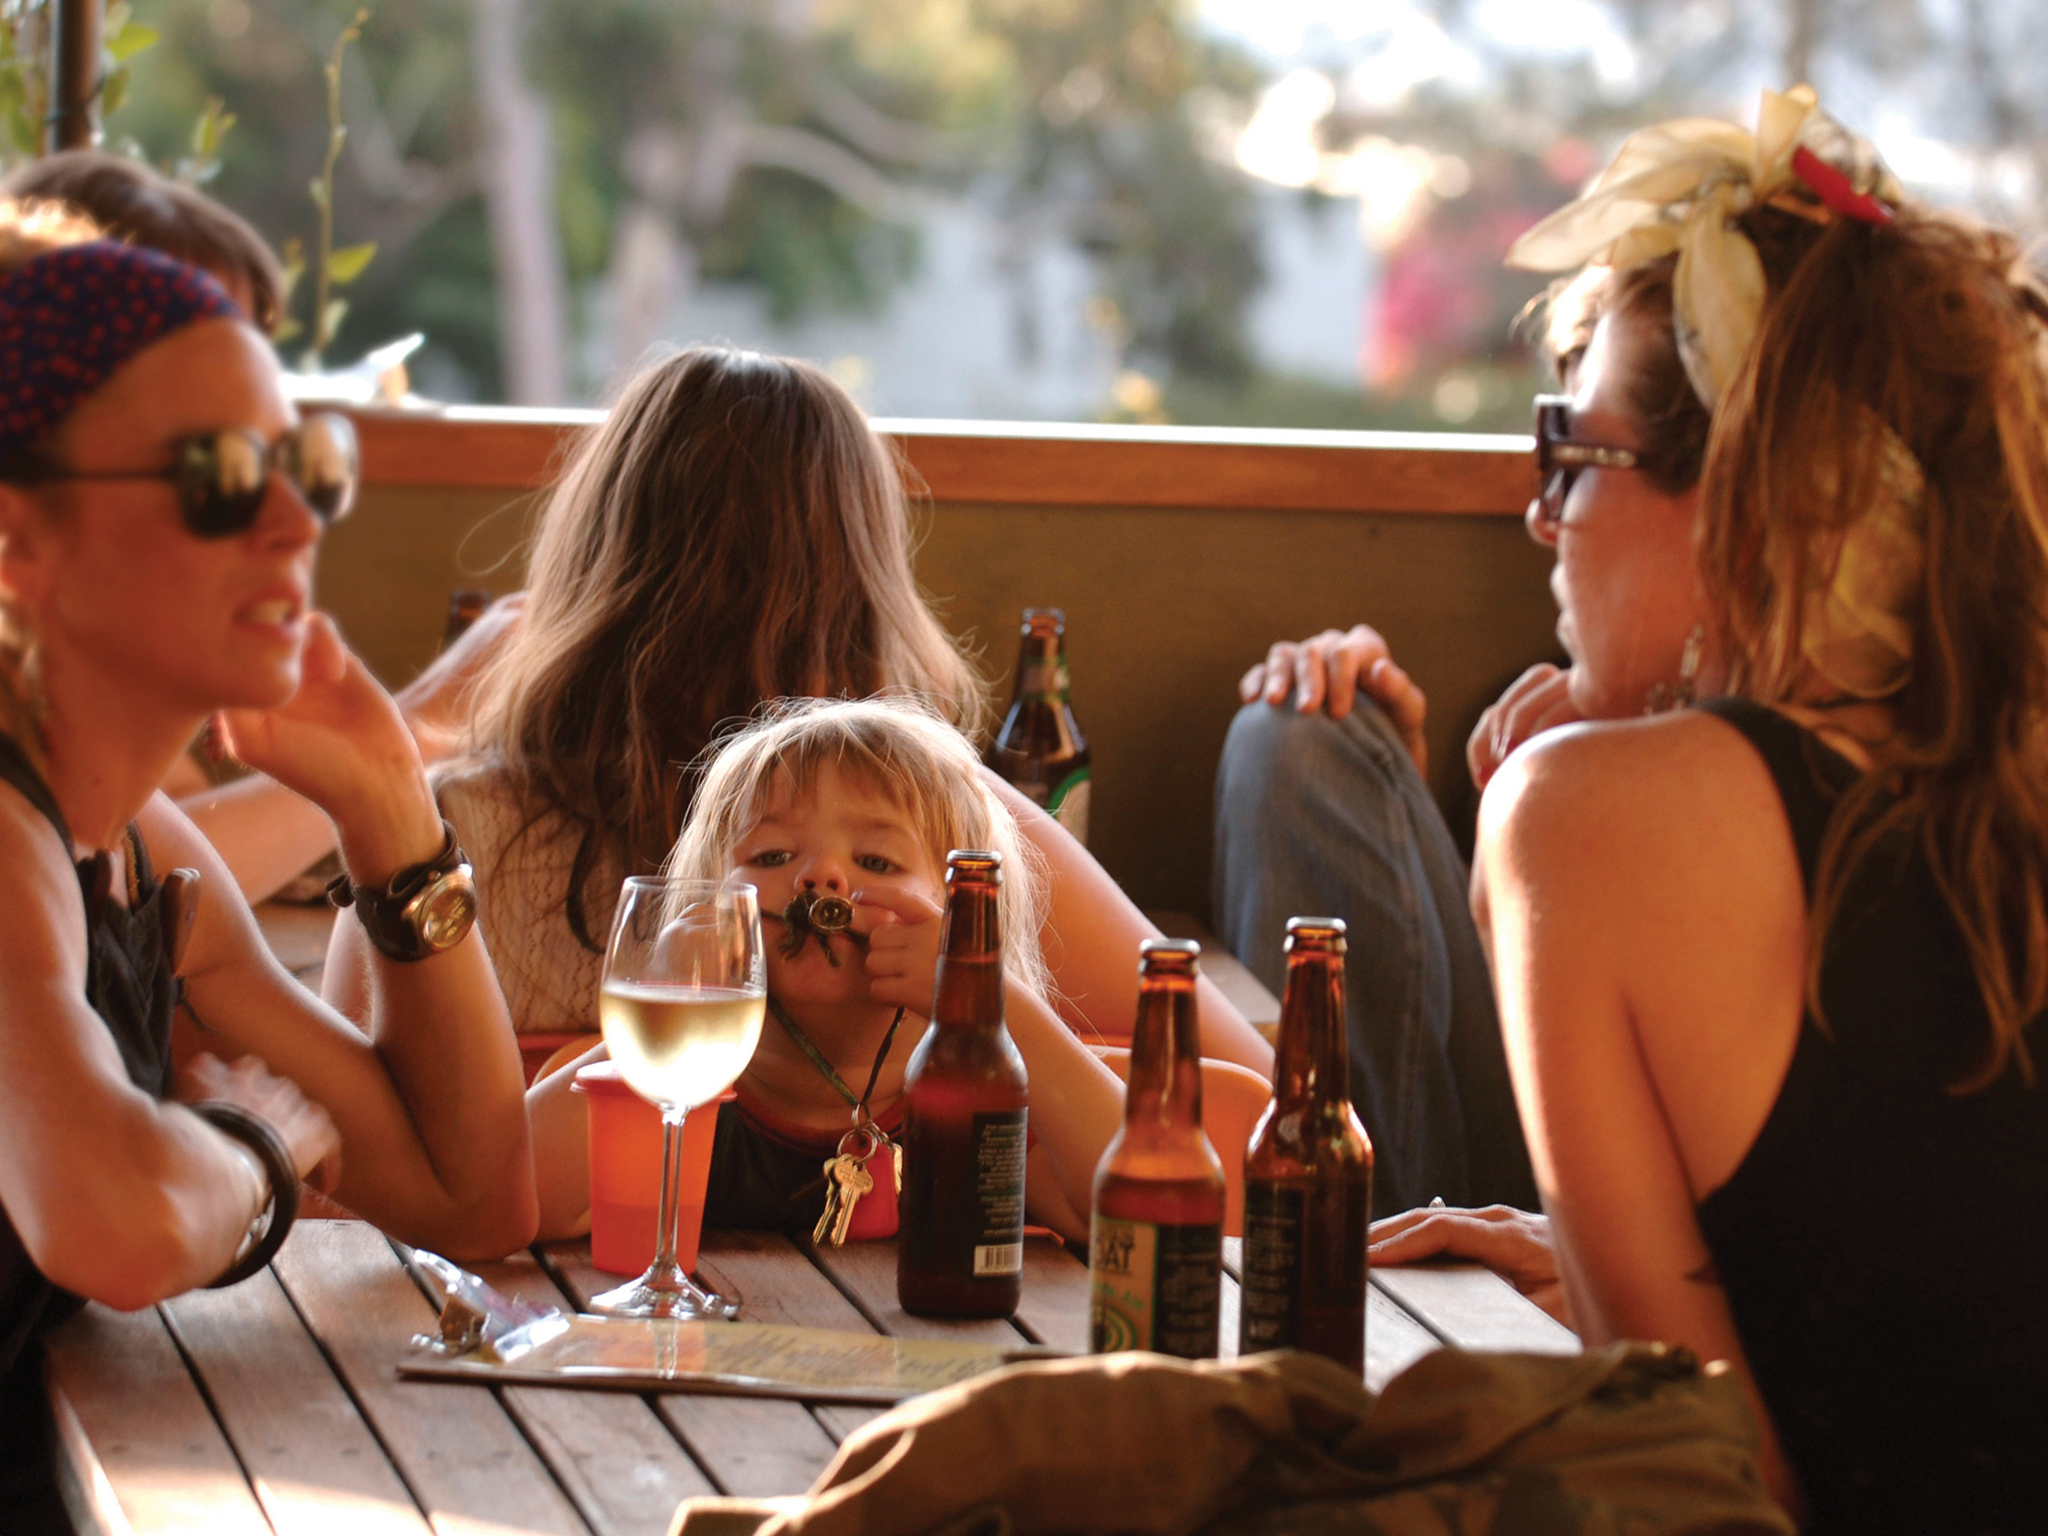 Women having a drink at a child-friendly pub